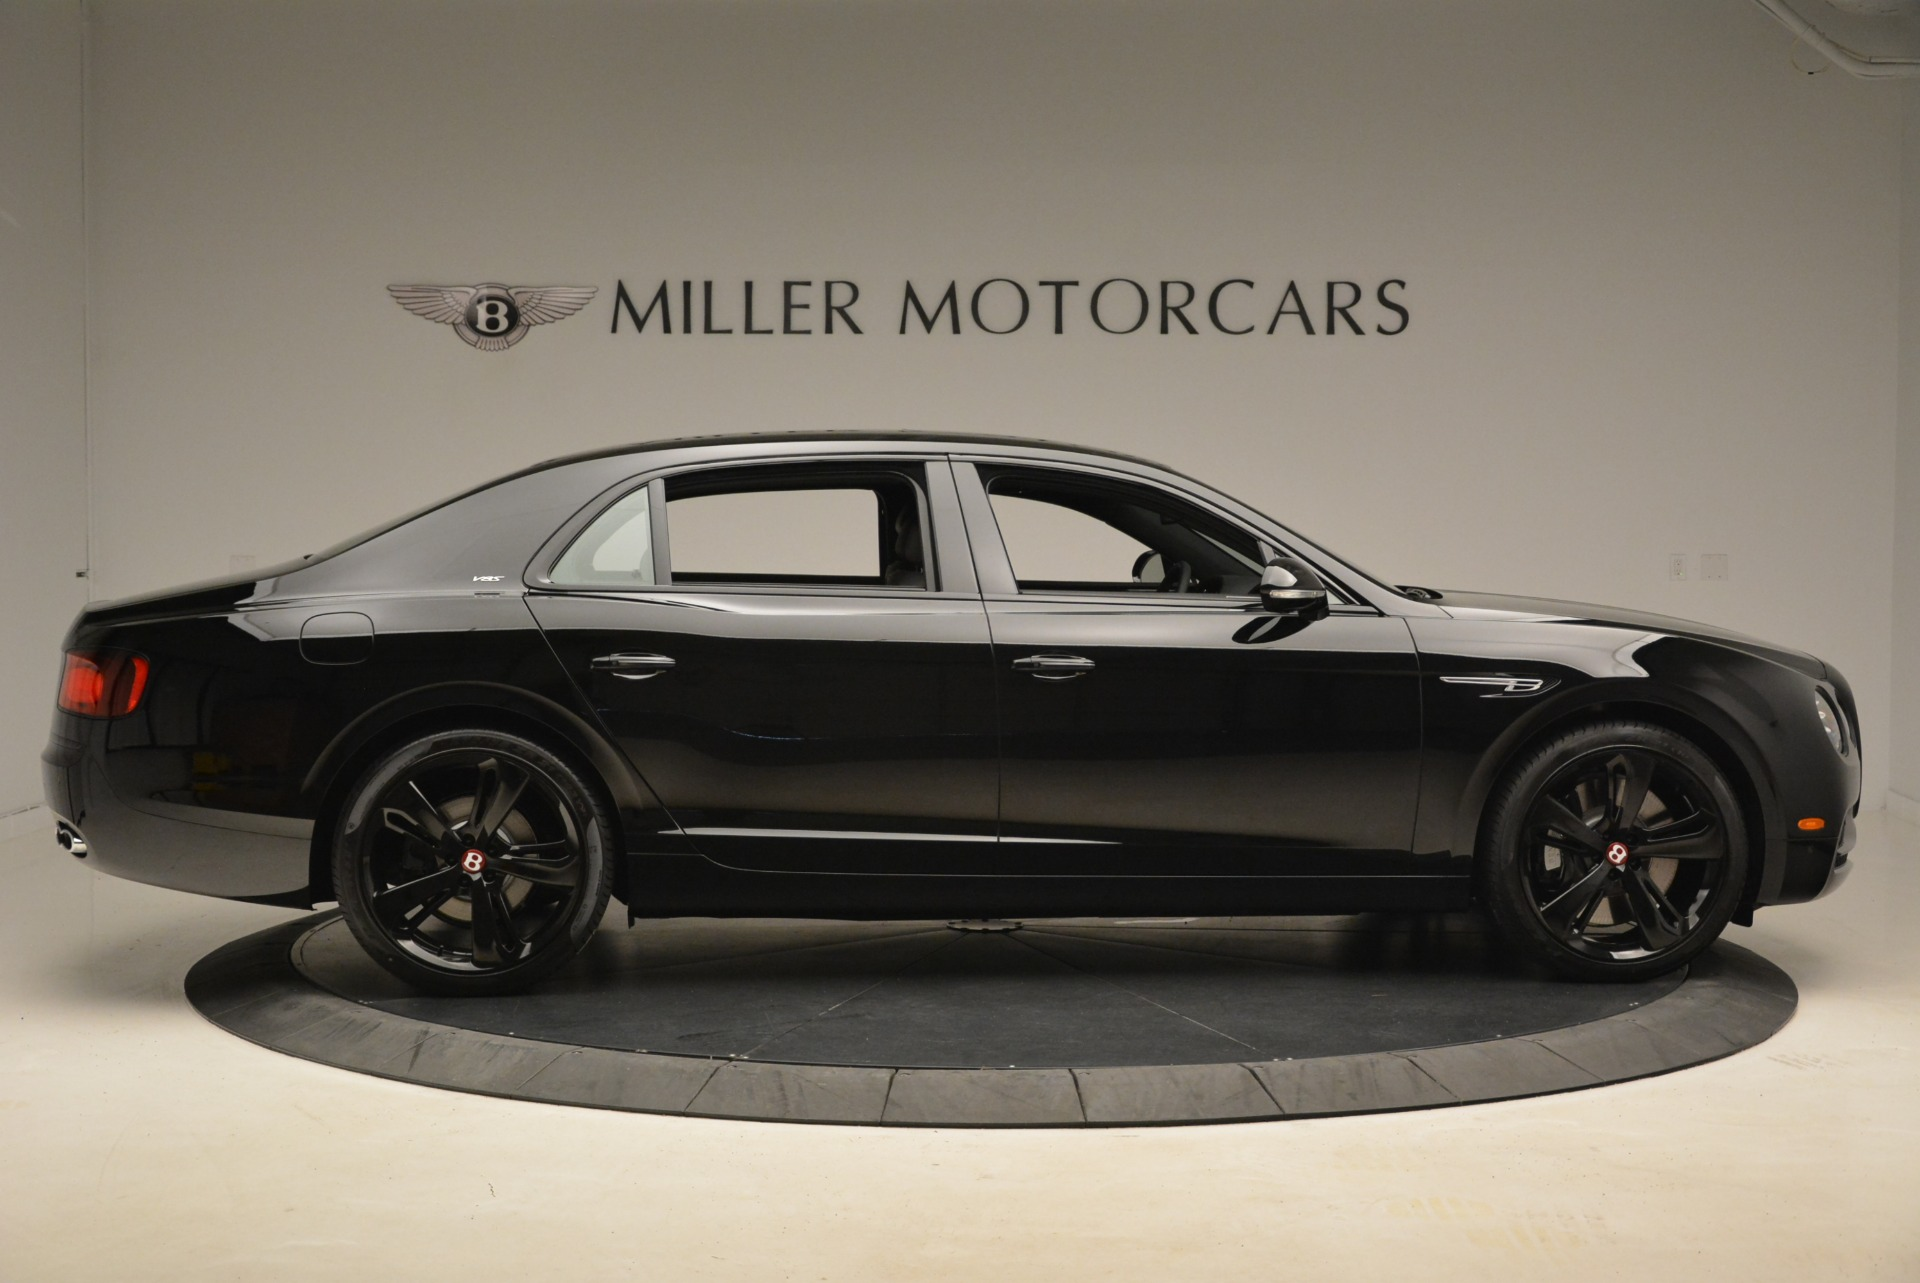 New 2018 Bentley Flying Spur V8 S Black Edition For Sale In Westport, CT 2073_p9